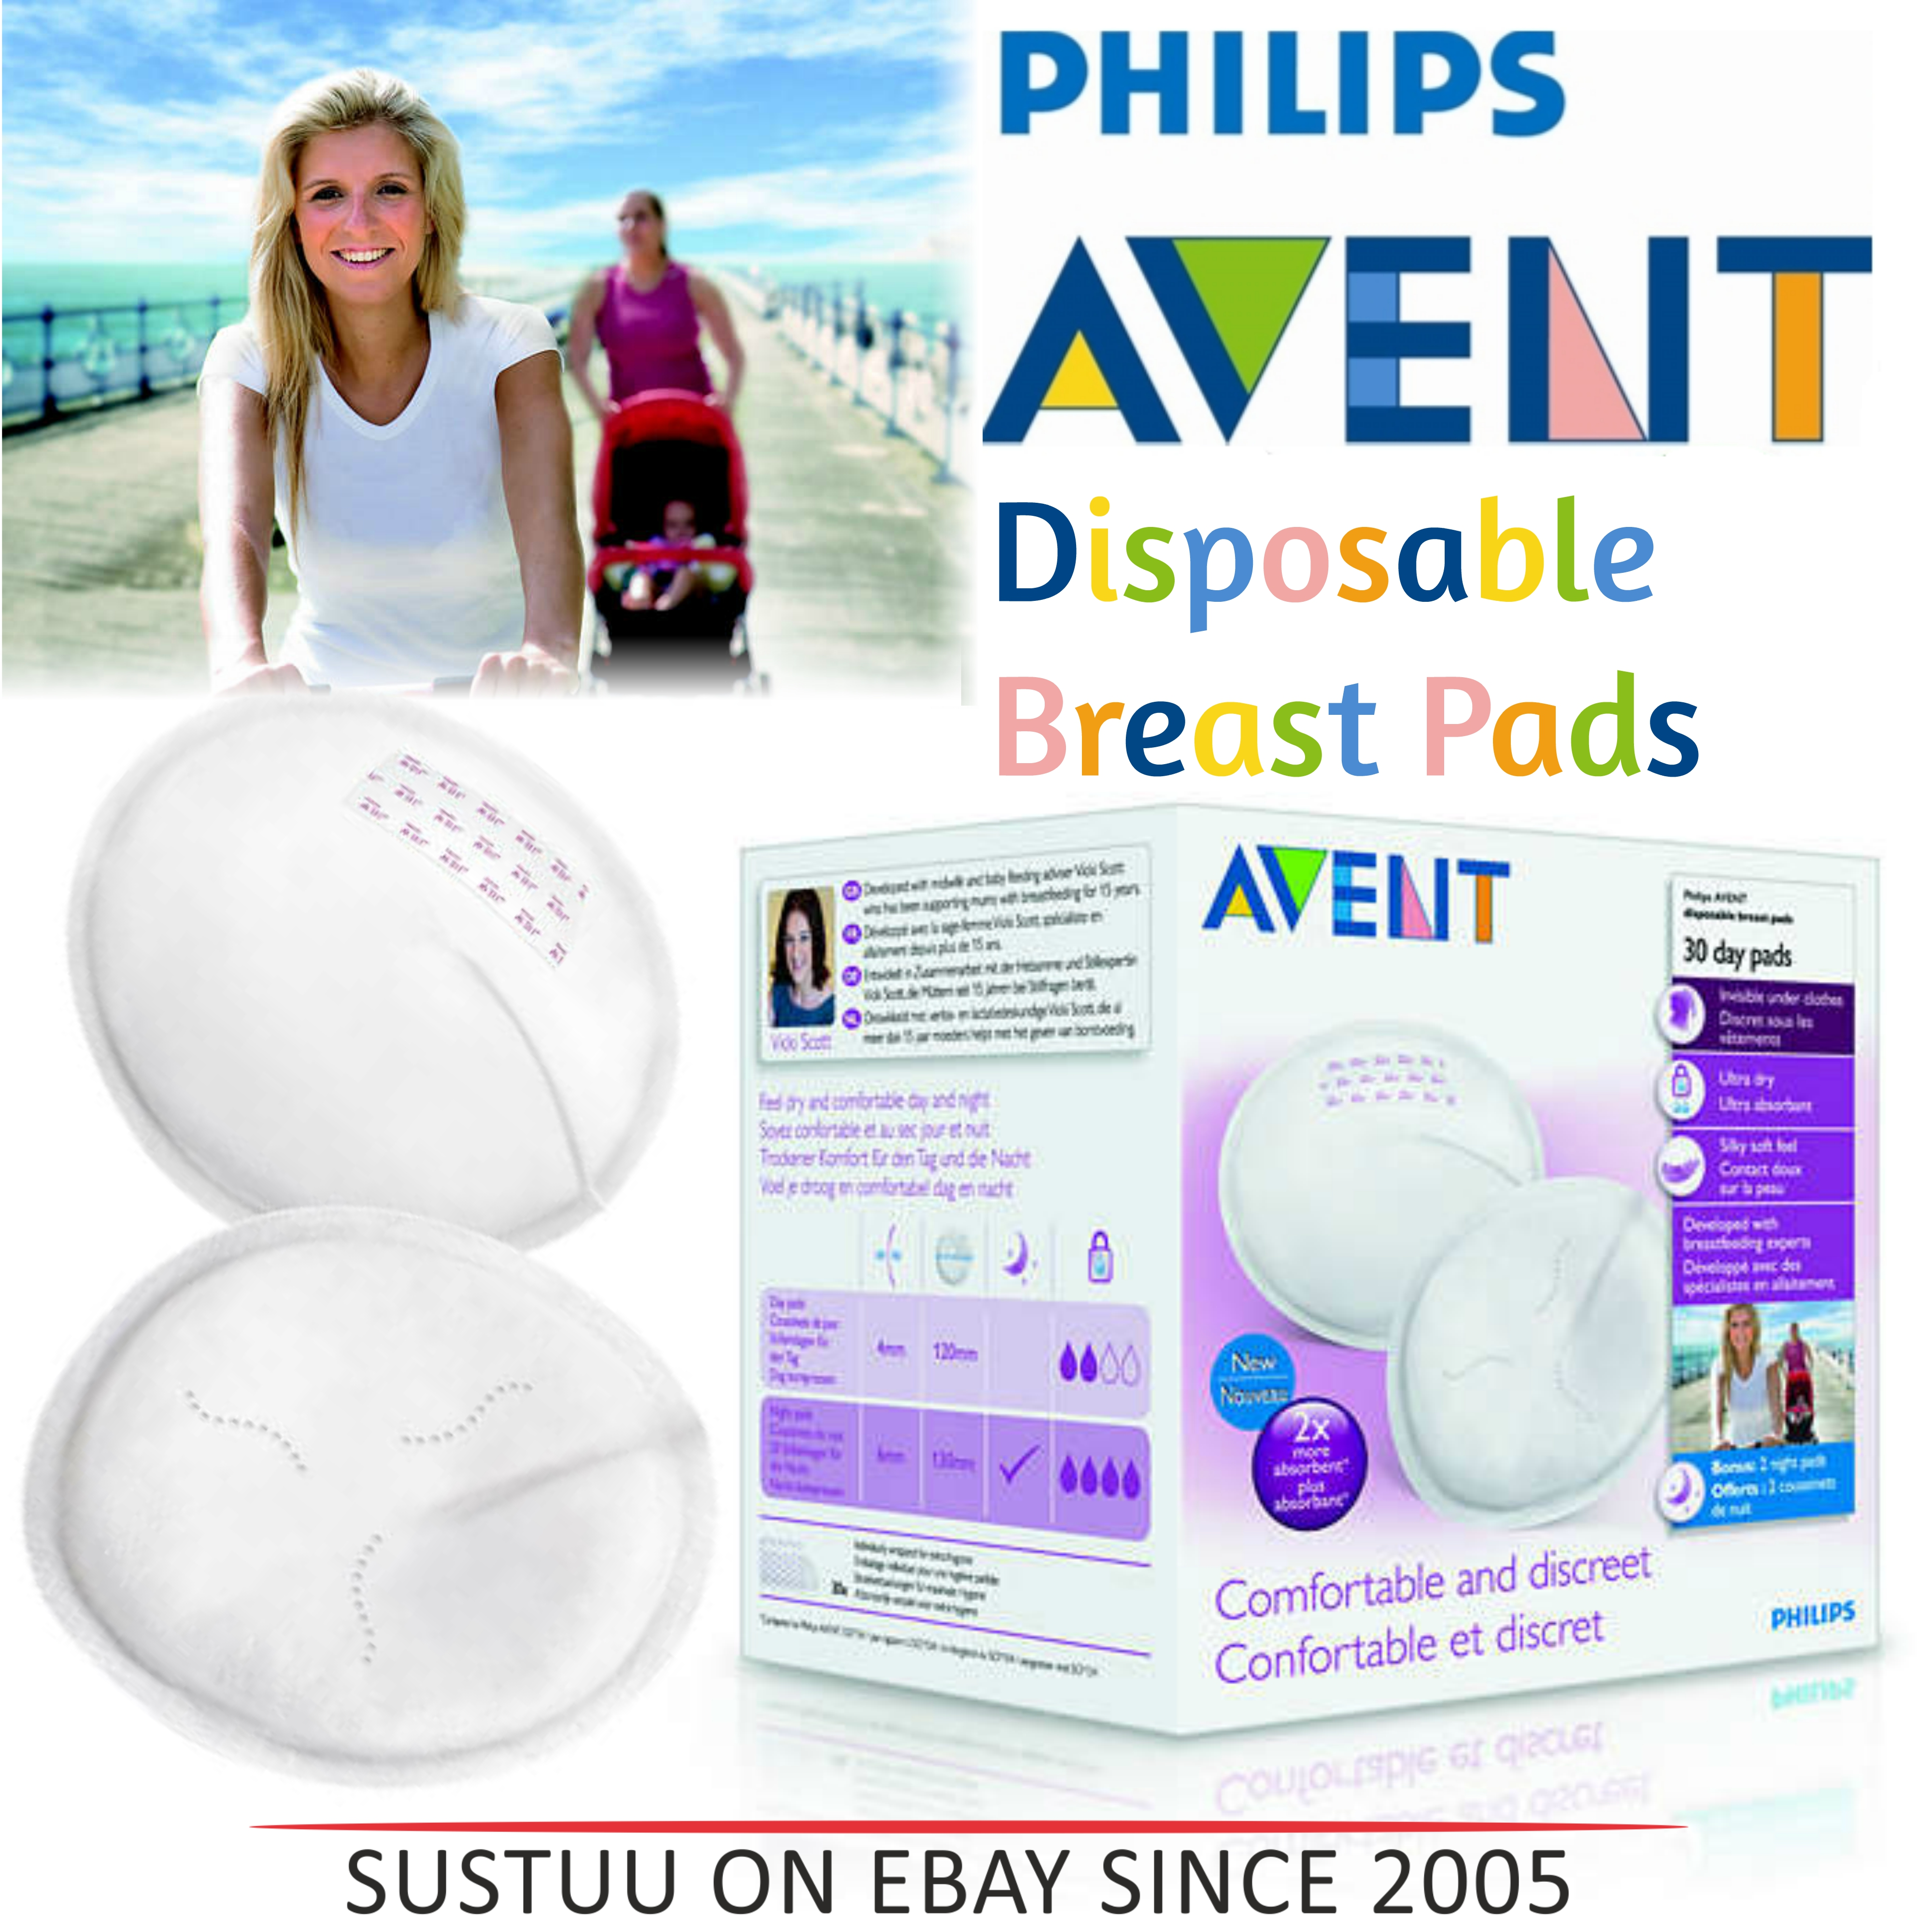 Philips Avent Disposable Breast Pads Day|Hygienic|Four Layers|Silky Soft|30 Pack